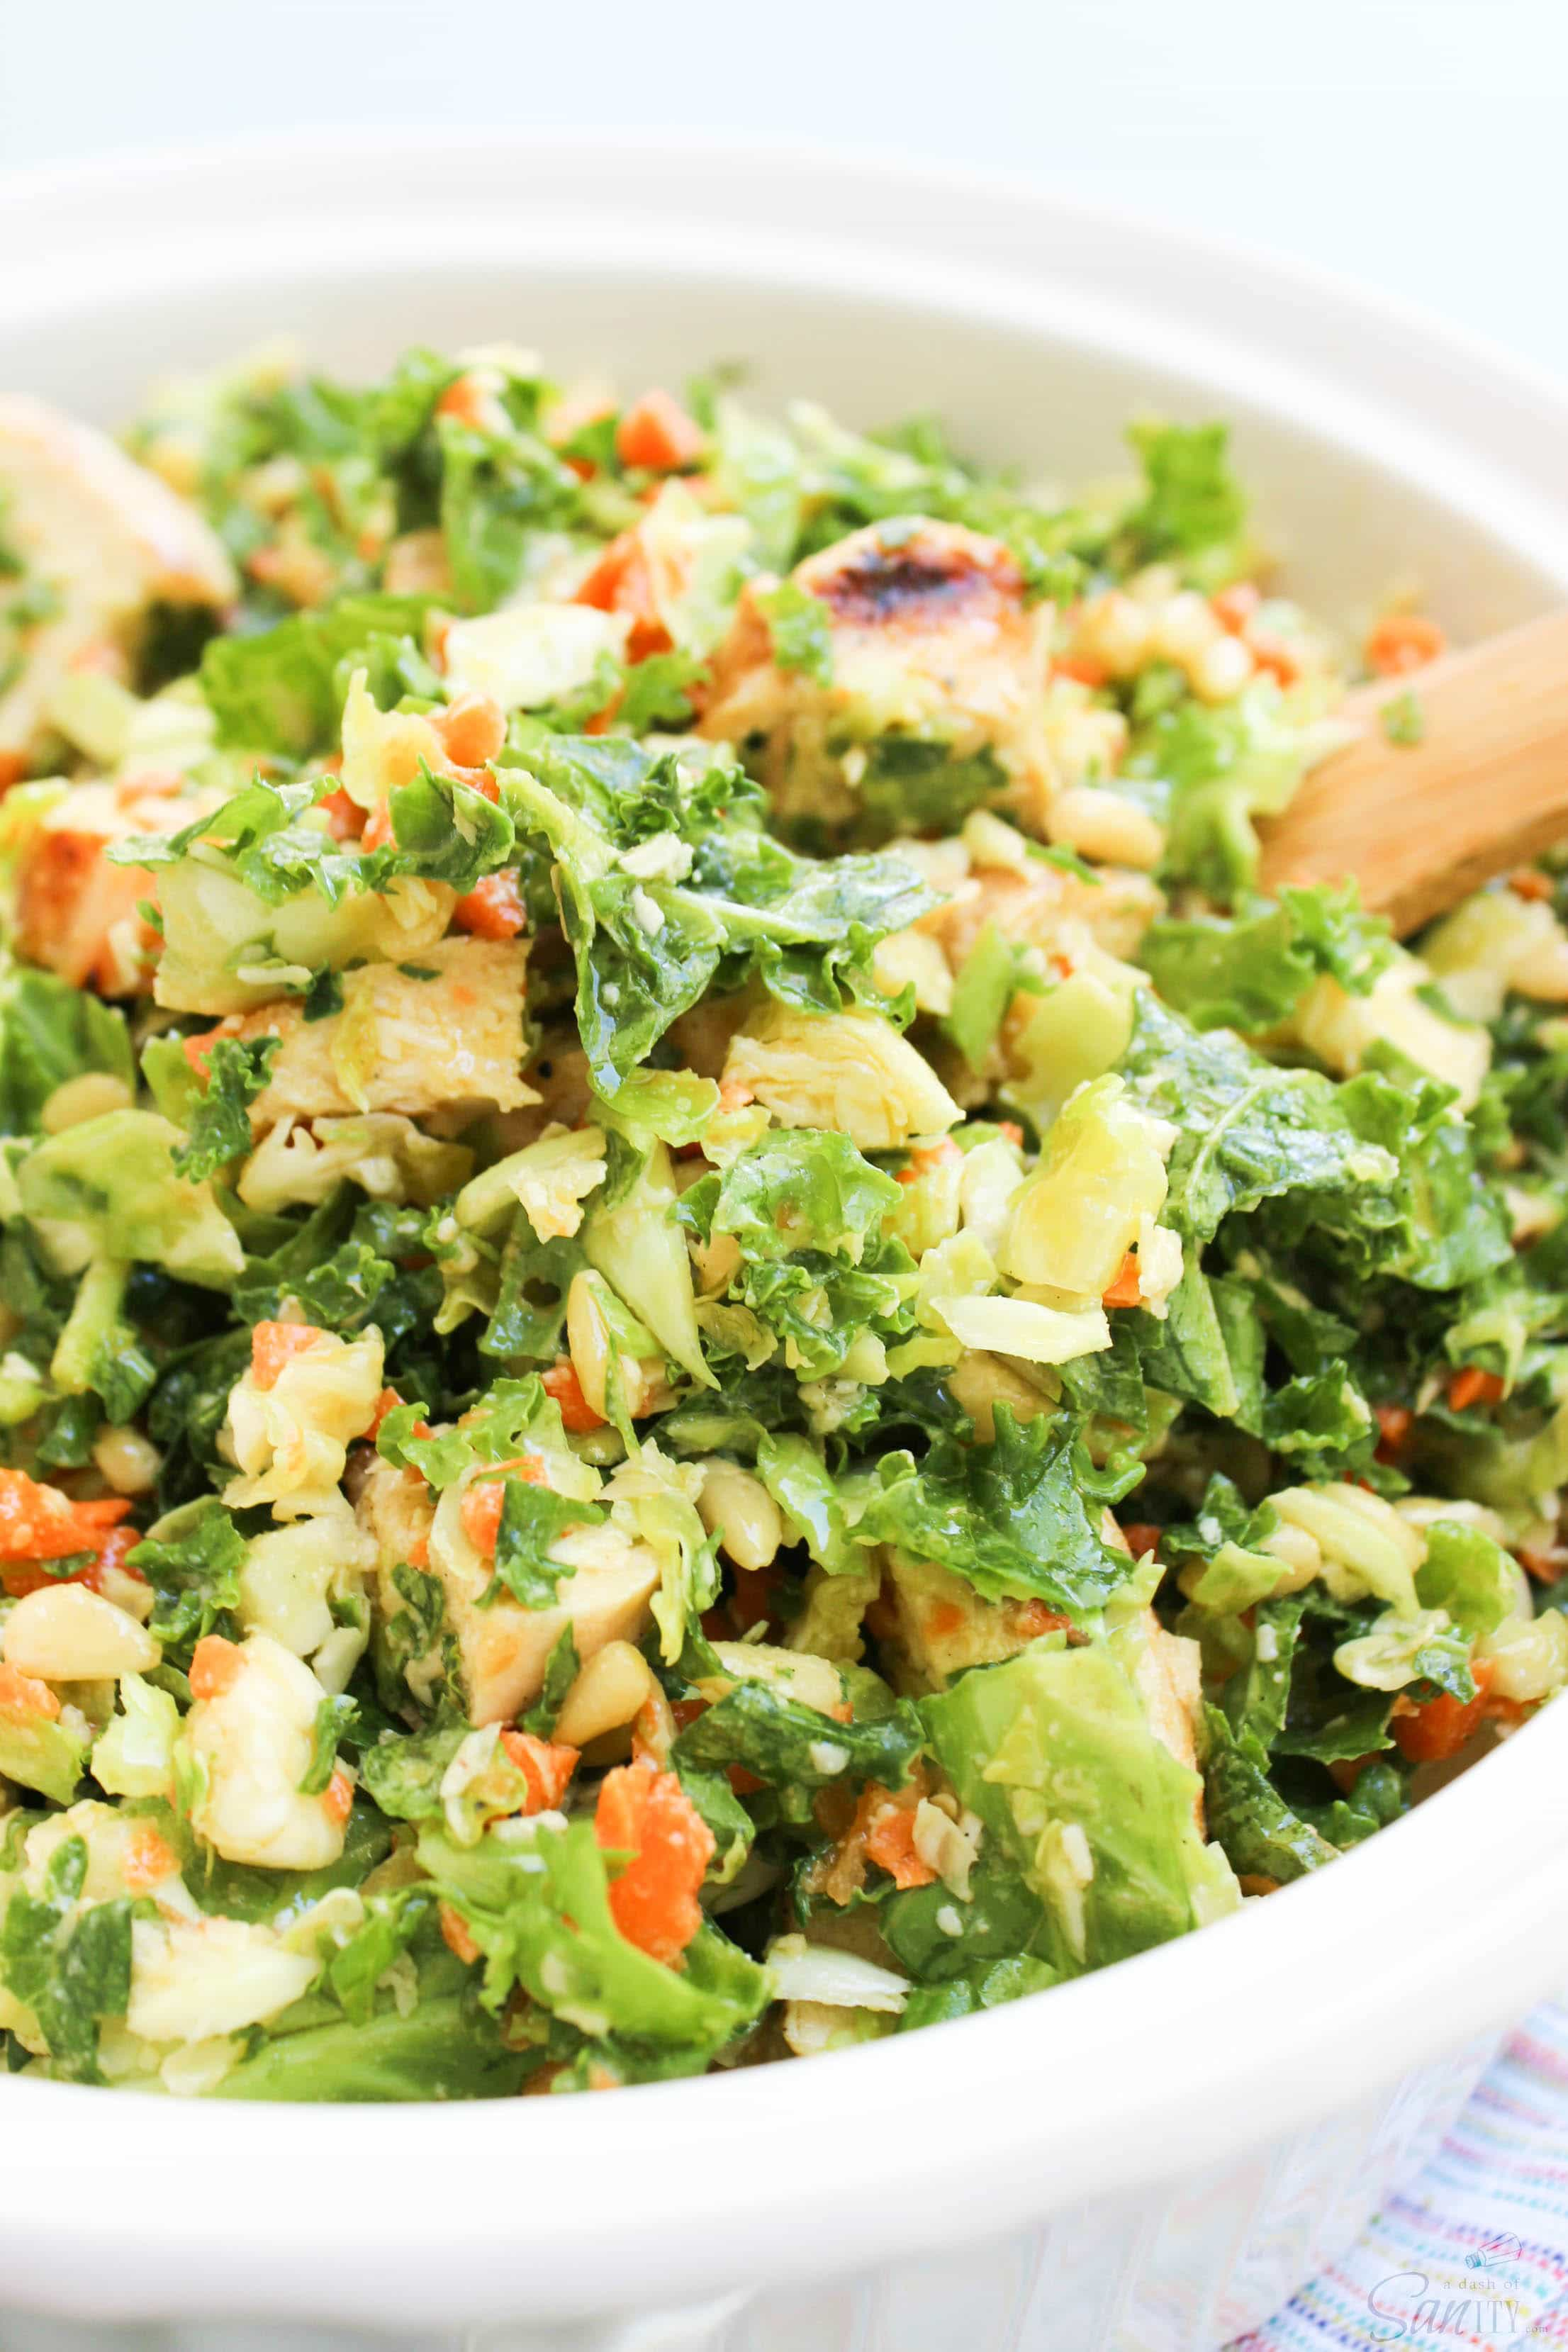 Farmhouse Rules Salad Recipes Chicken And Kale Brussels Sprouts Salad